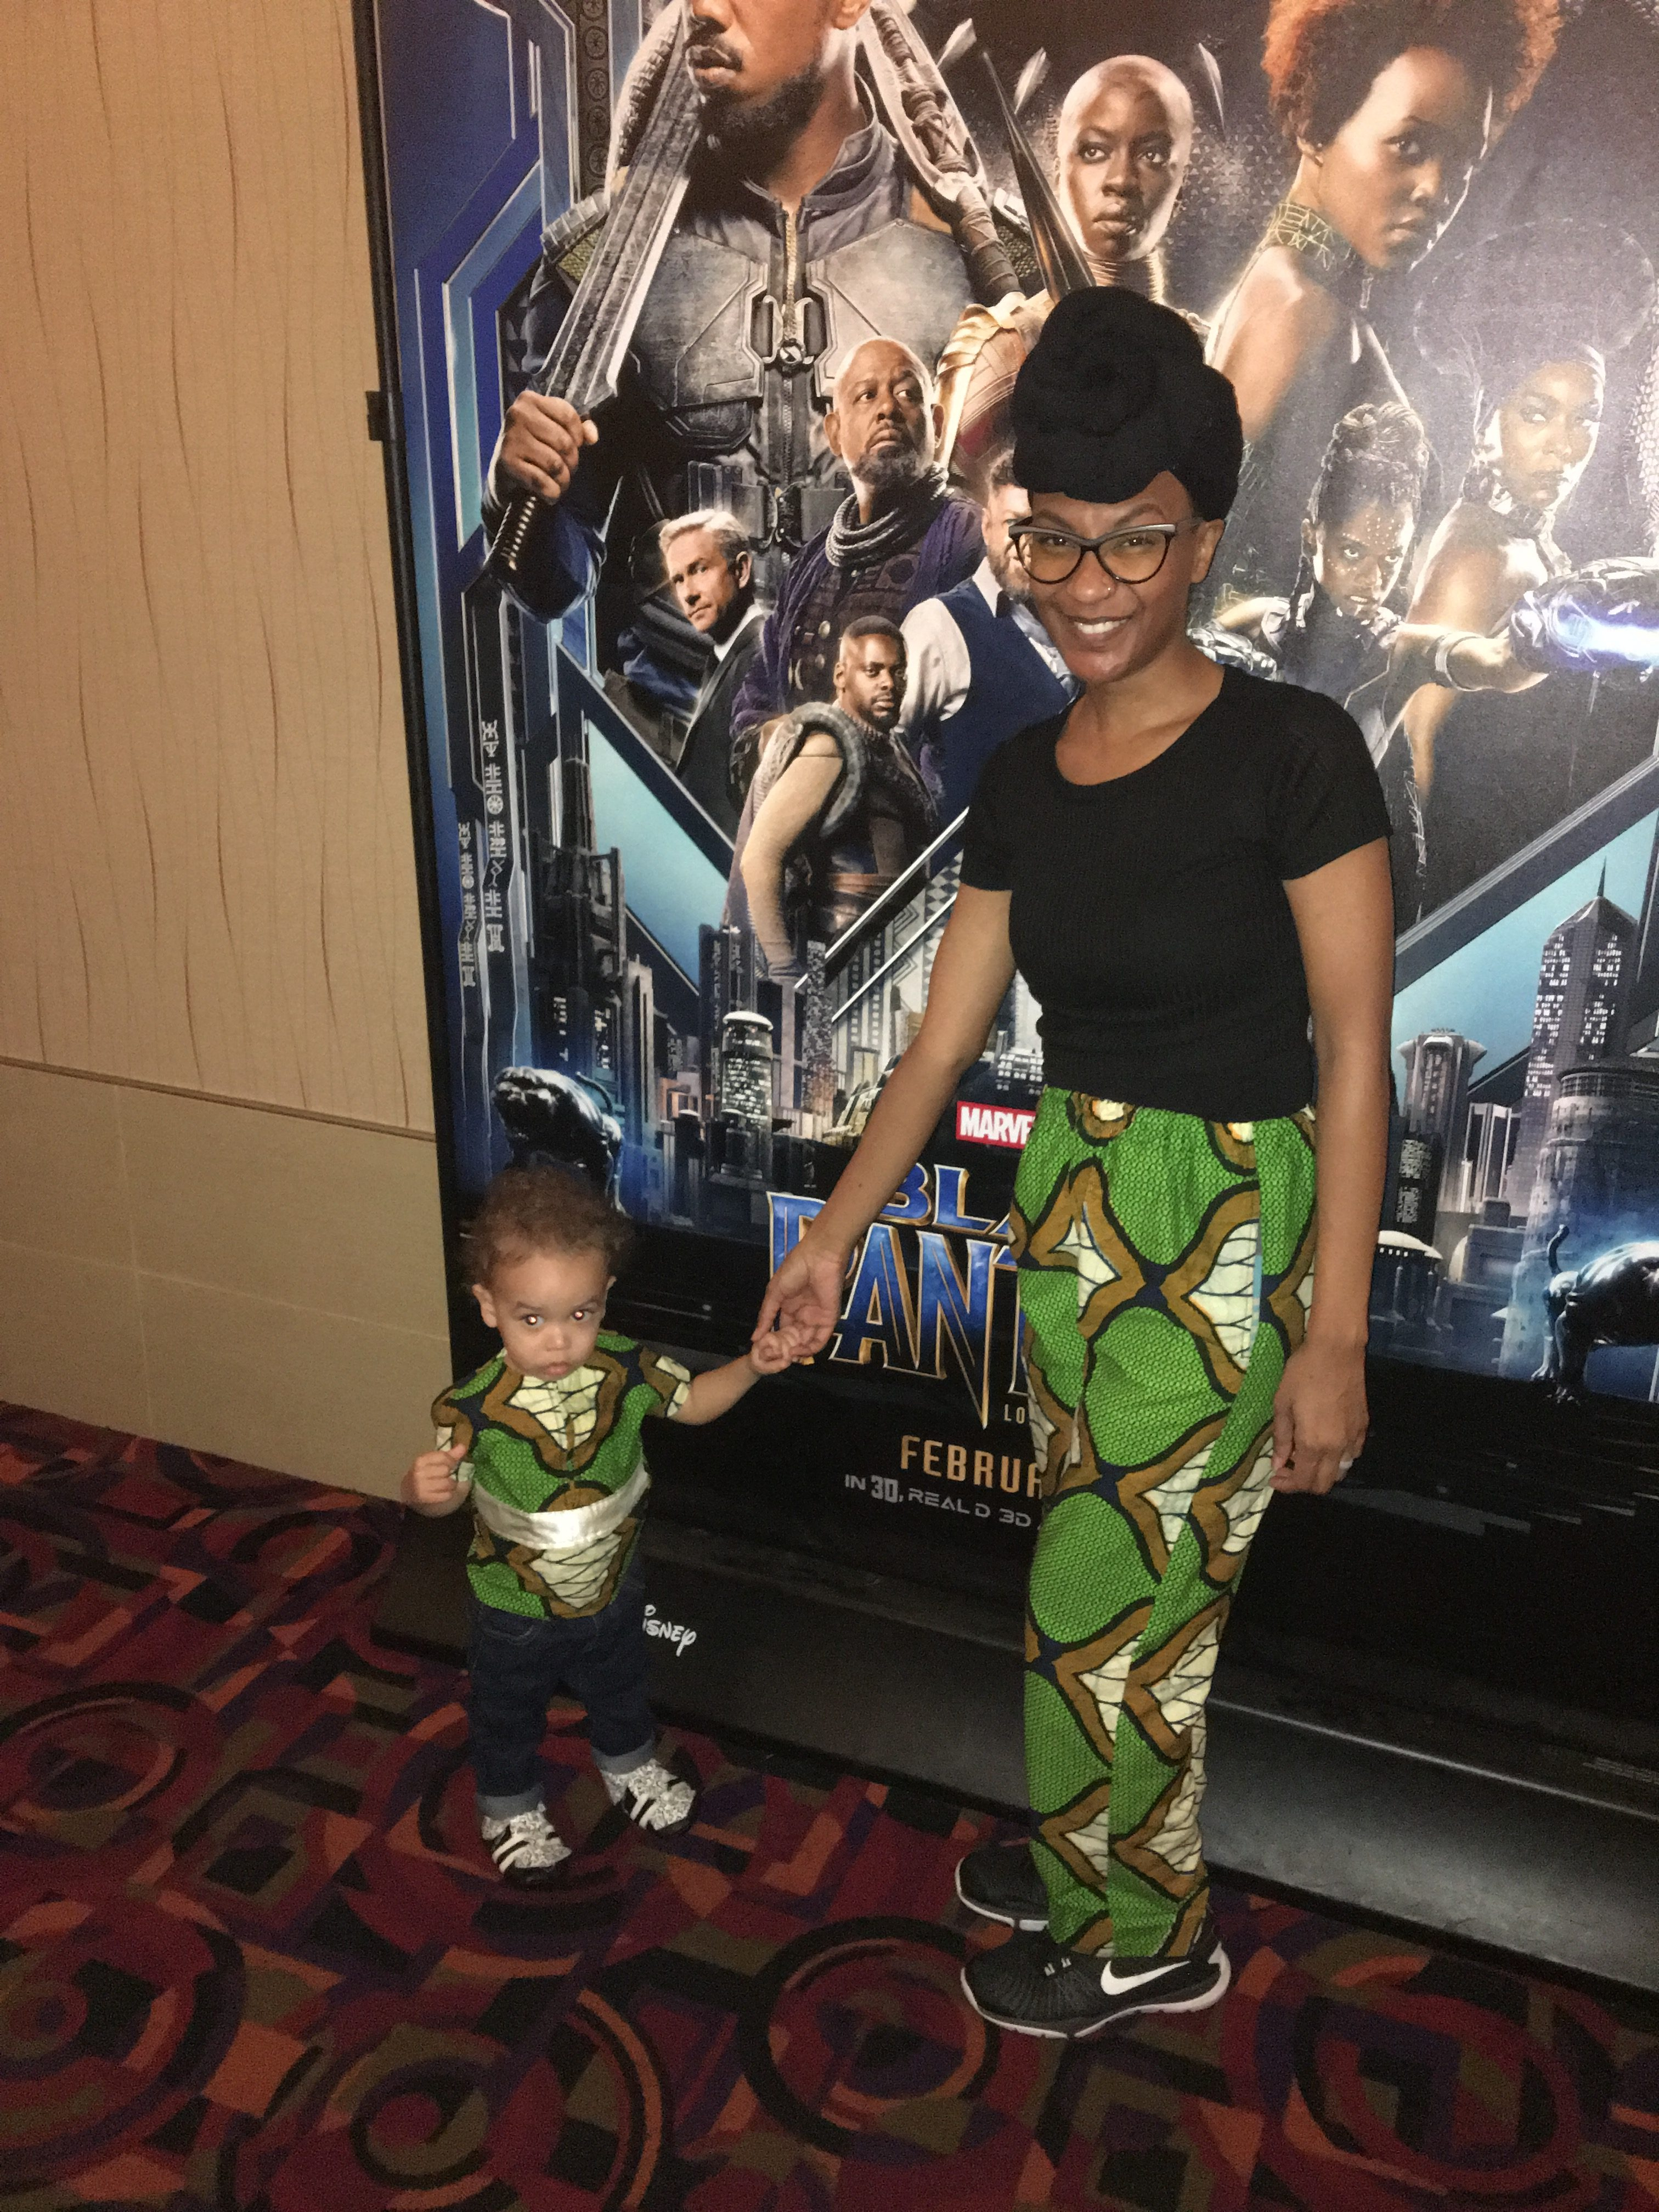 Black Panther Cosplay, Thrift Store, Family, Child, Nakia, River Tribe - via Old World New